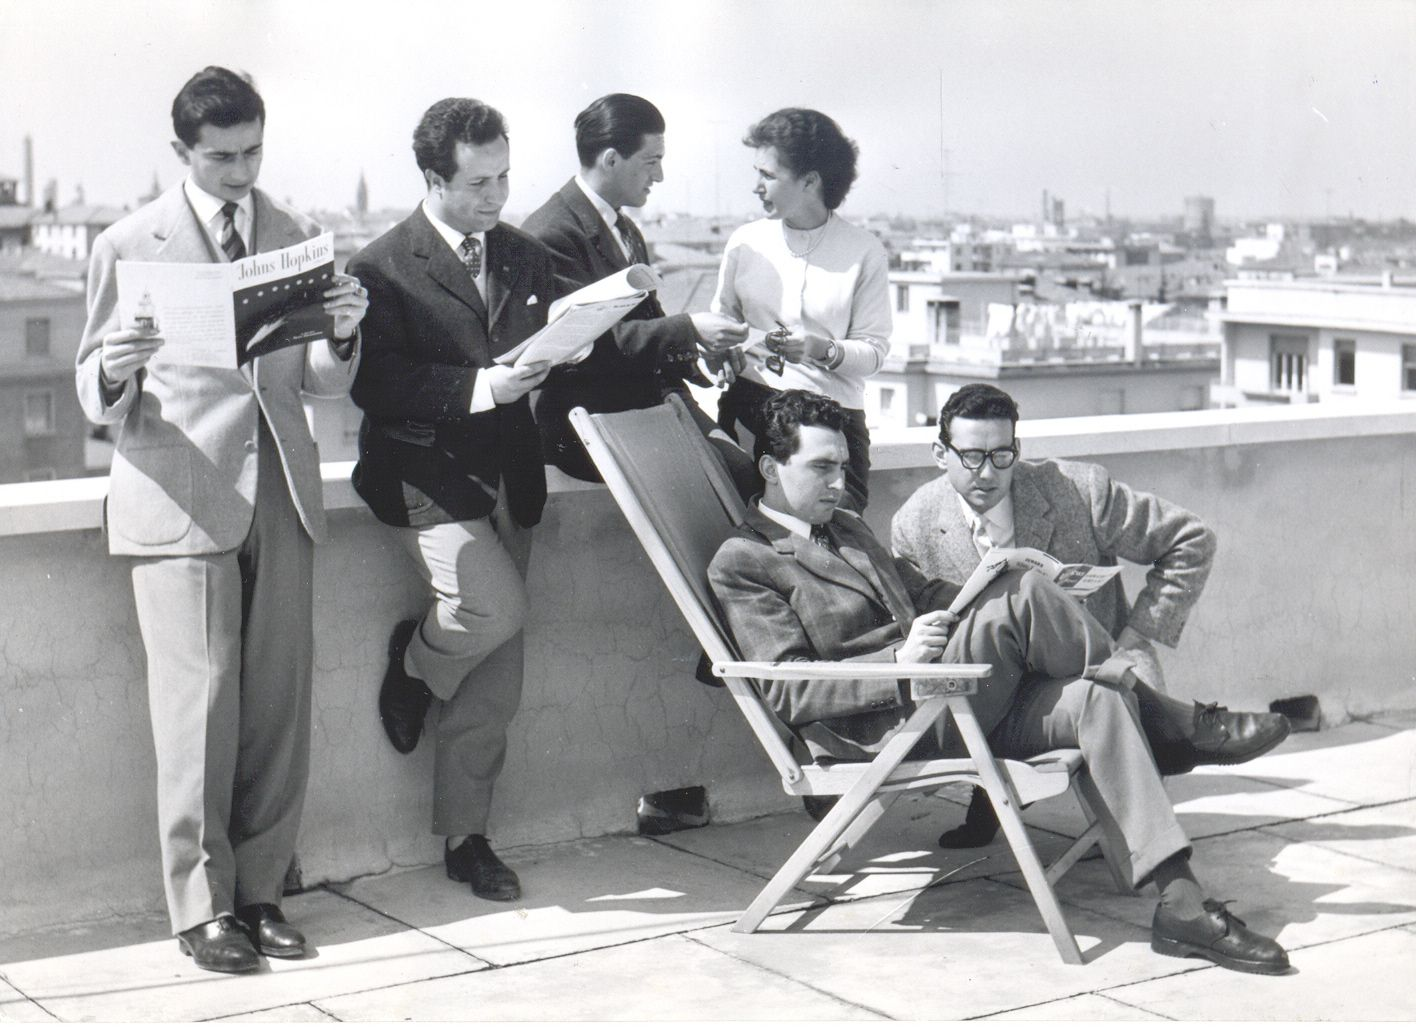 BC-students-on-terrace-1950s.jpg (1416×1030)